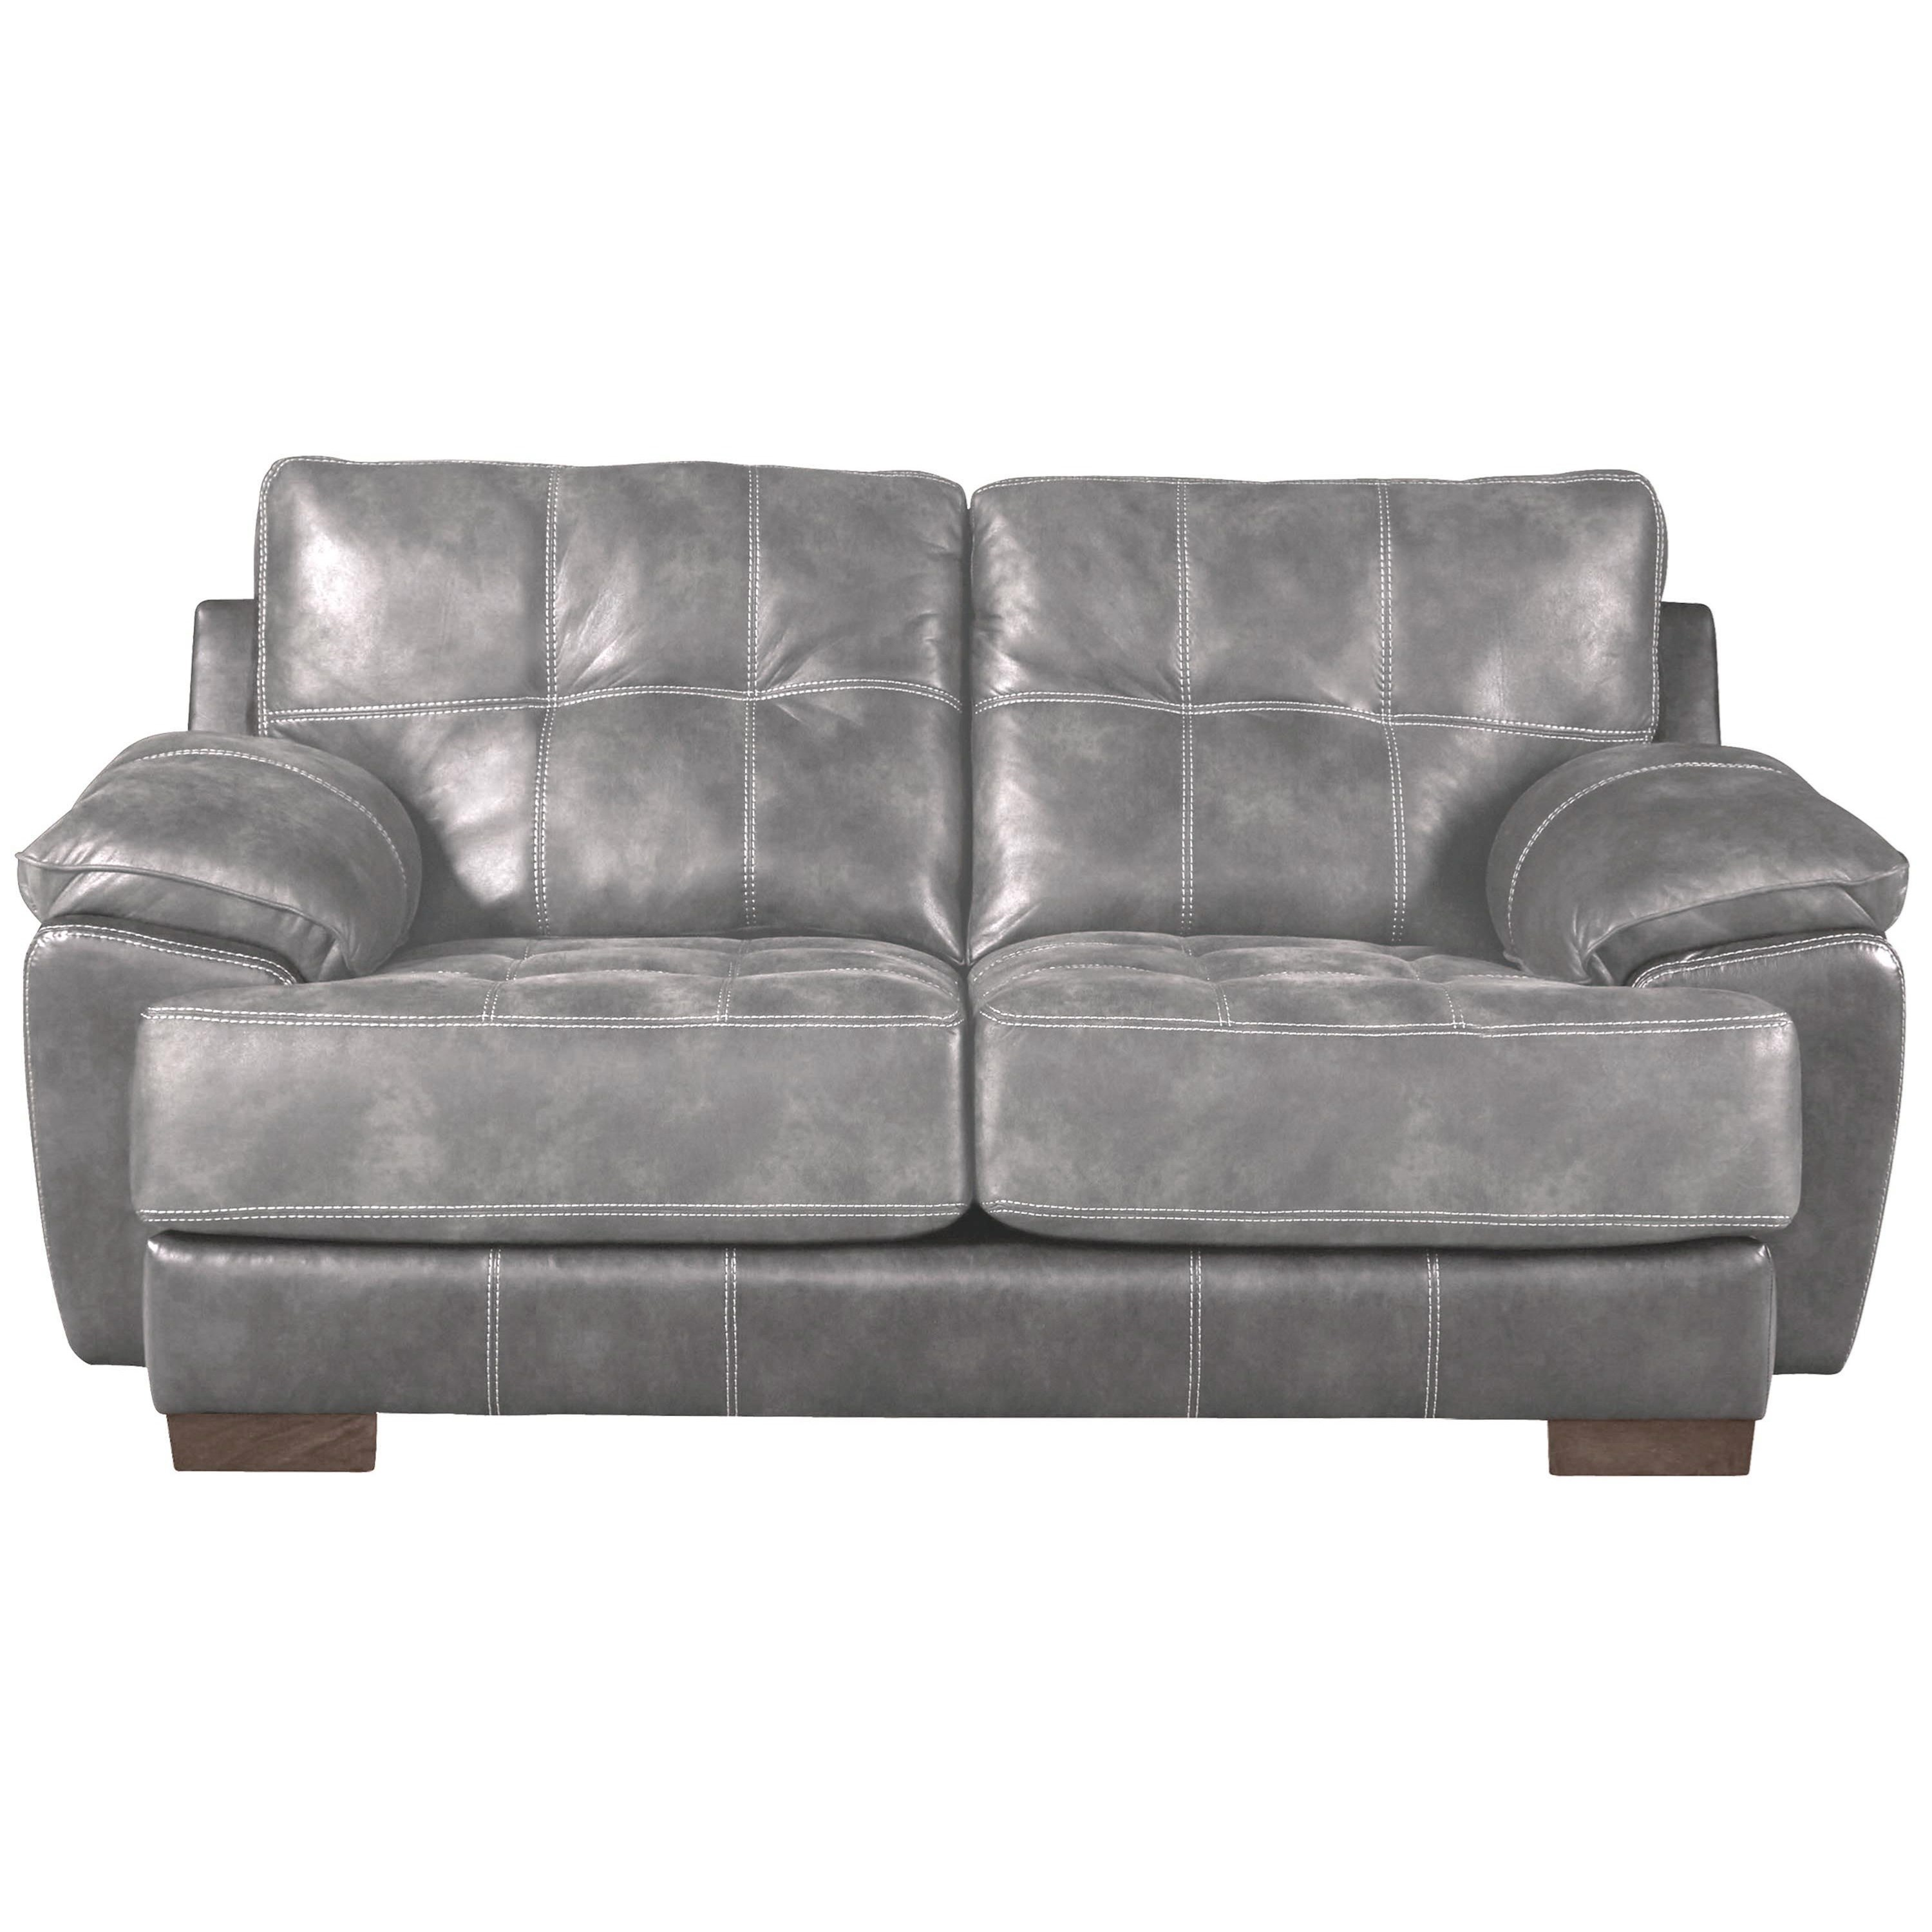 Two Seat Loveseat